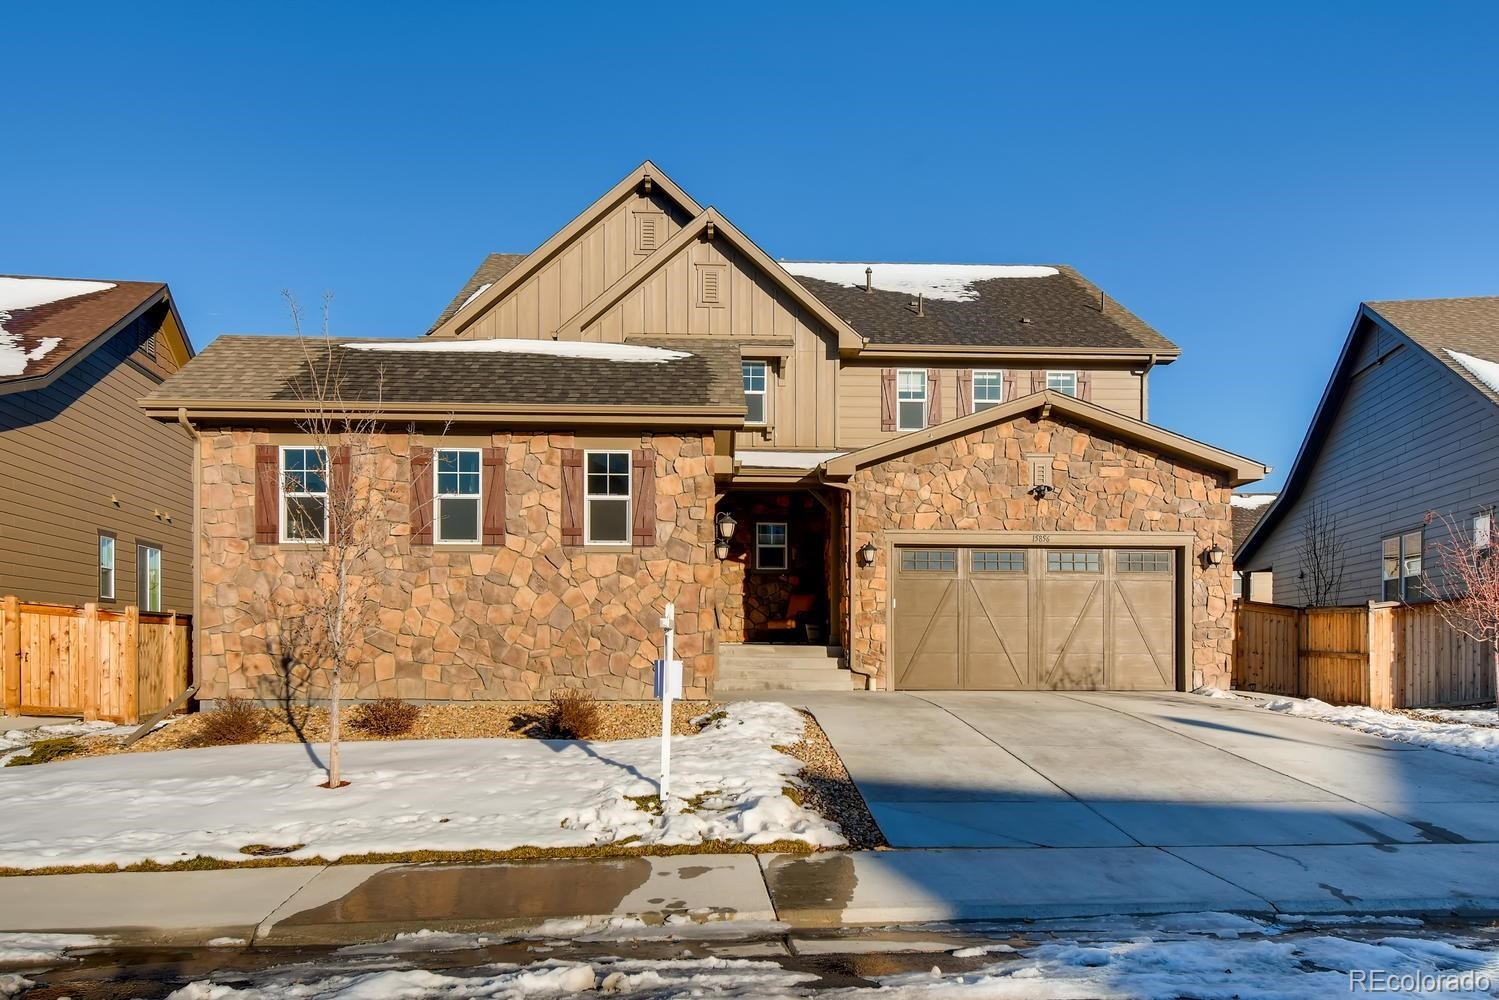 MLS# 7598022 - 2 - 15856 Josephine Circle, Thornton, CO 80602